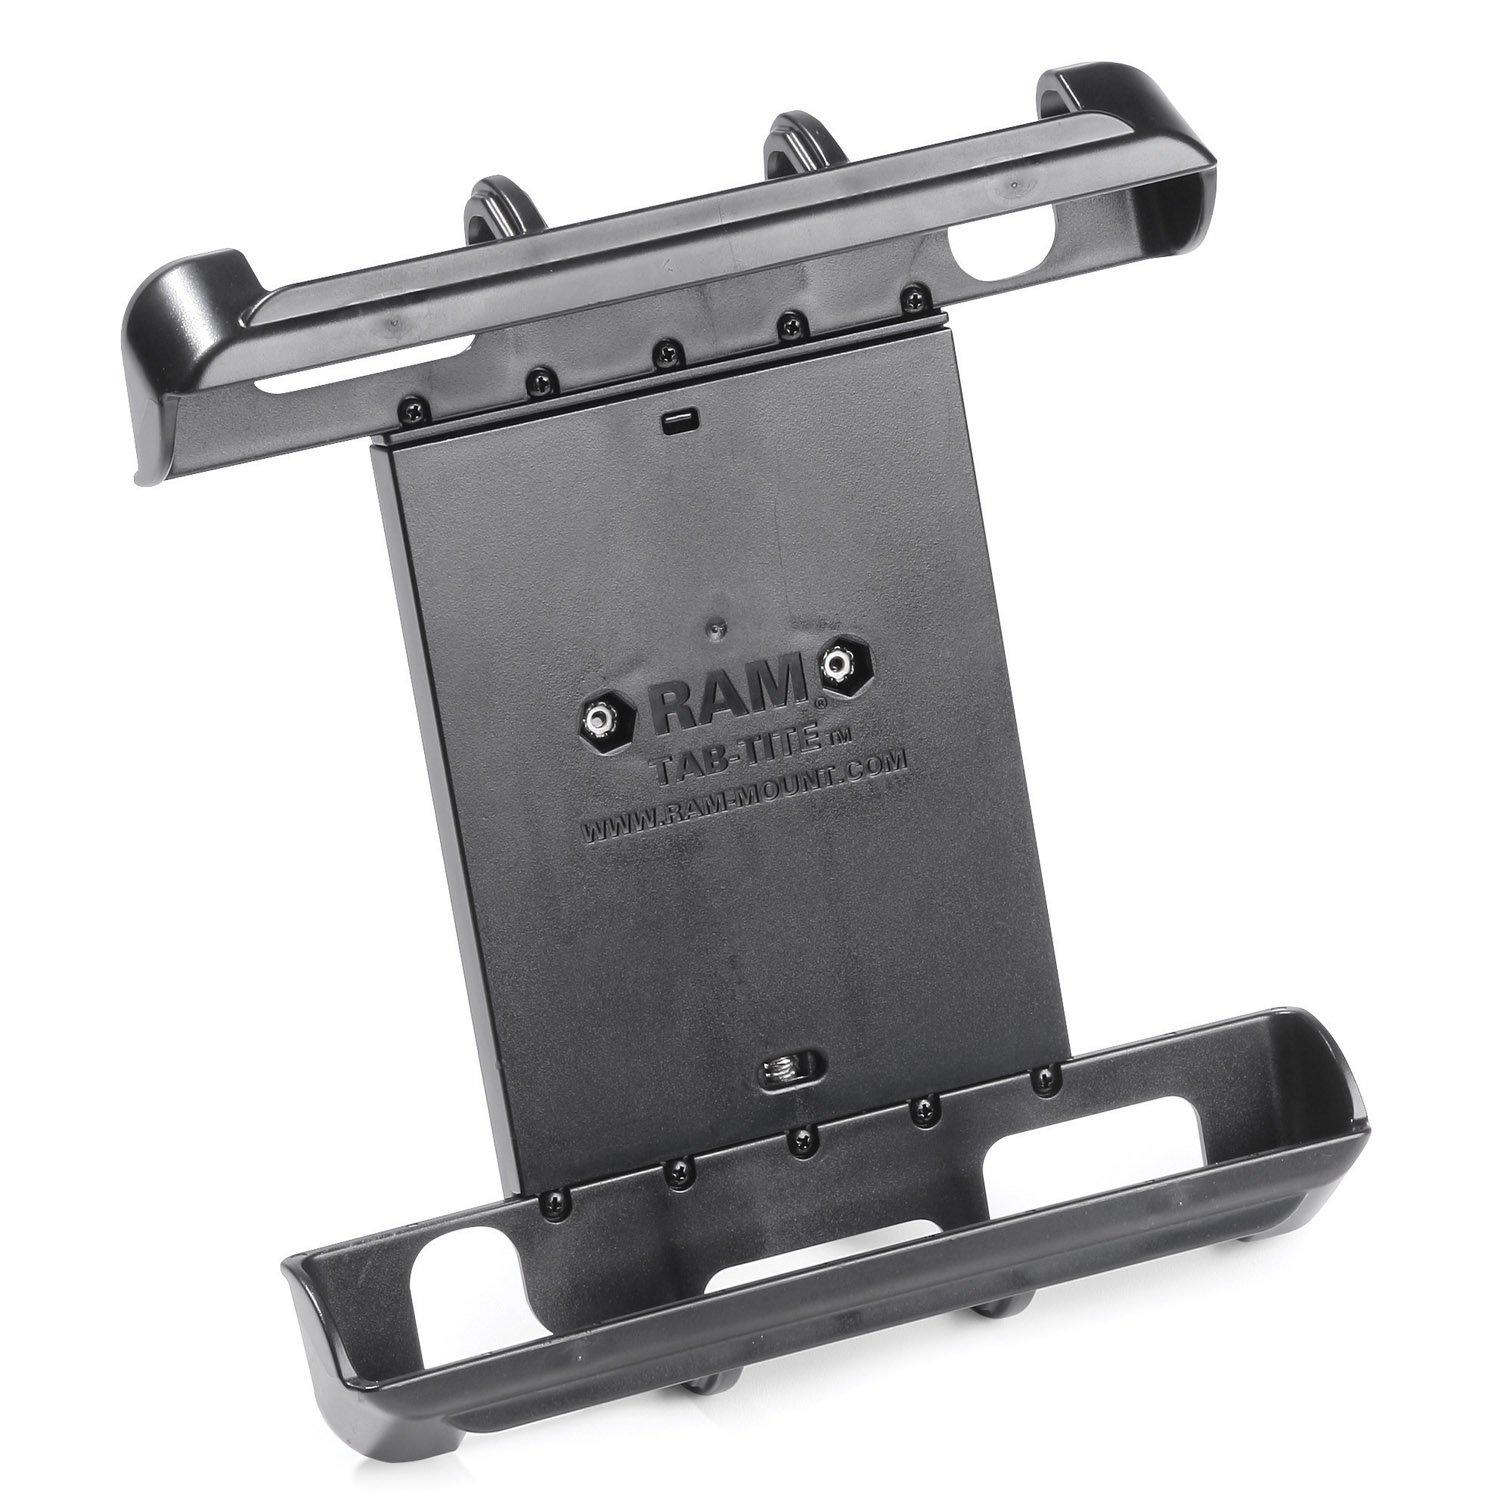 RAM Mounting Systems - RAM Mount Tab-Tite Universal Clamping Cradle f/10 Screen Tablets With or Without Heavy Duty Cases ram mounting systems ram mount 3 68 round base w 3 38 e size ball product category ram mount store e size